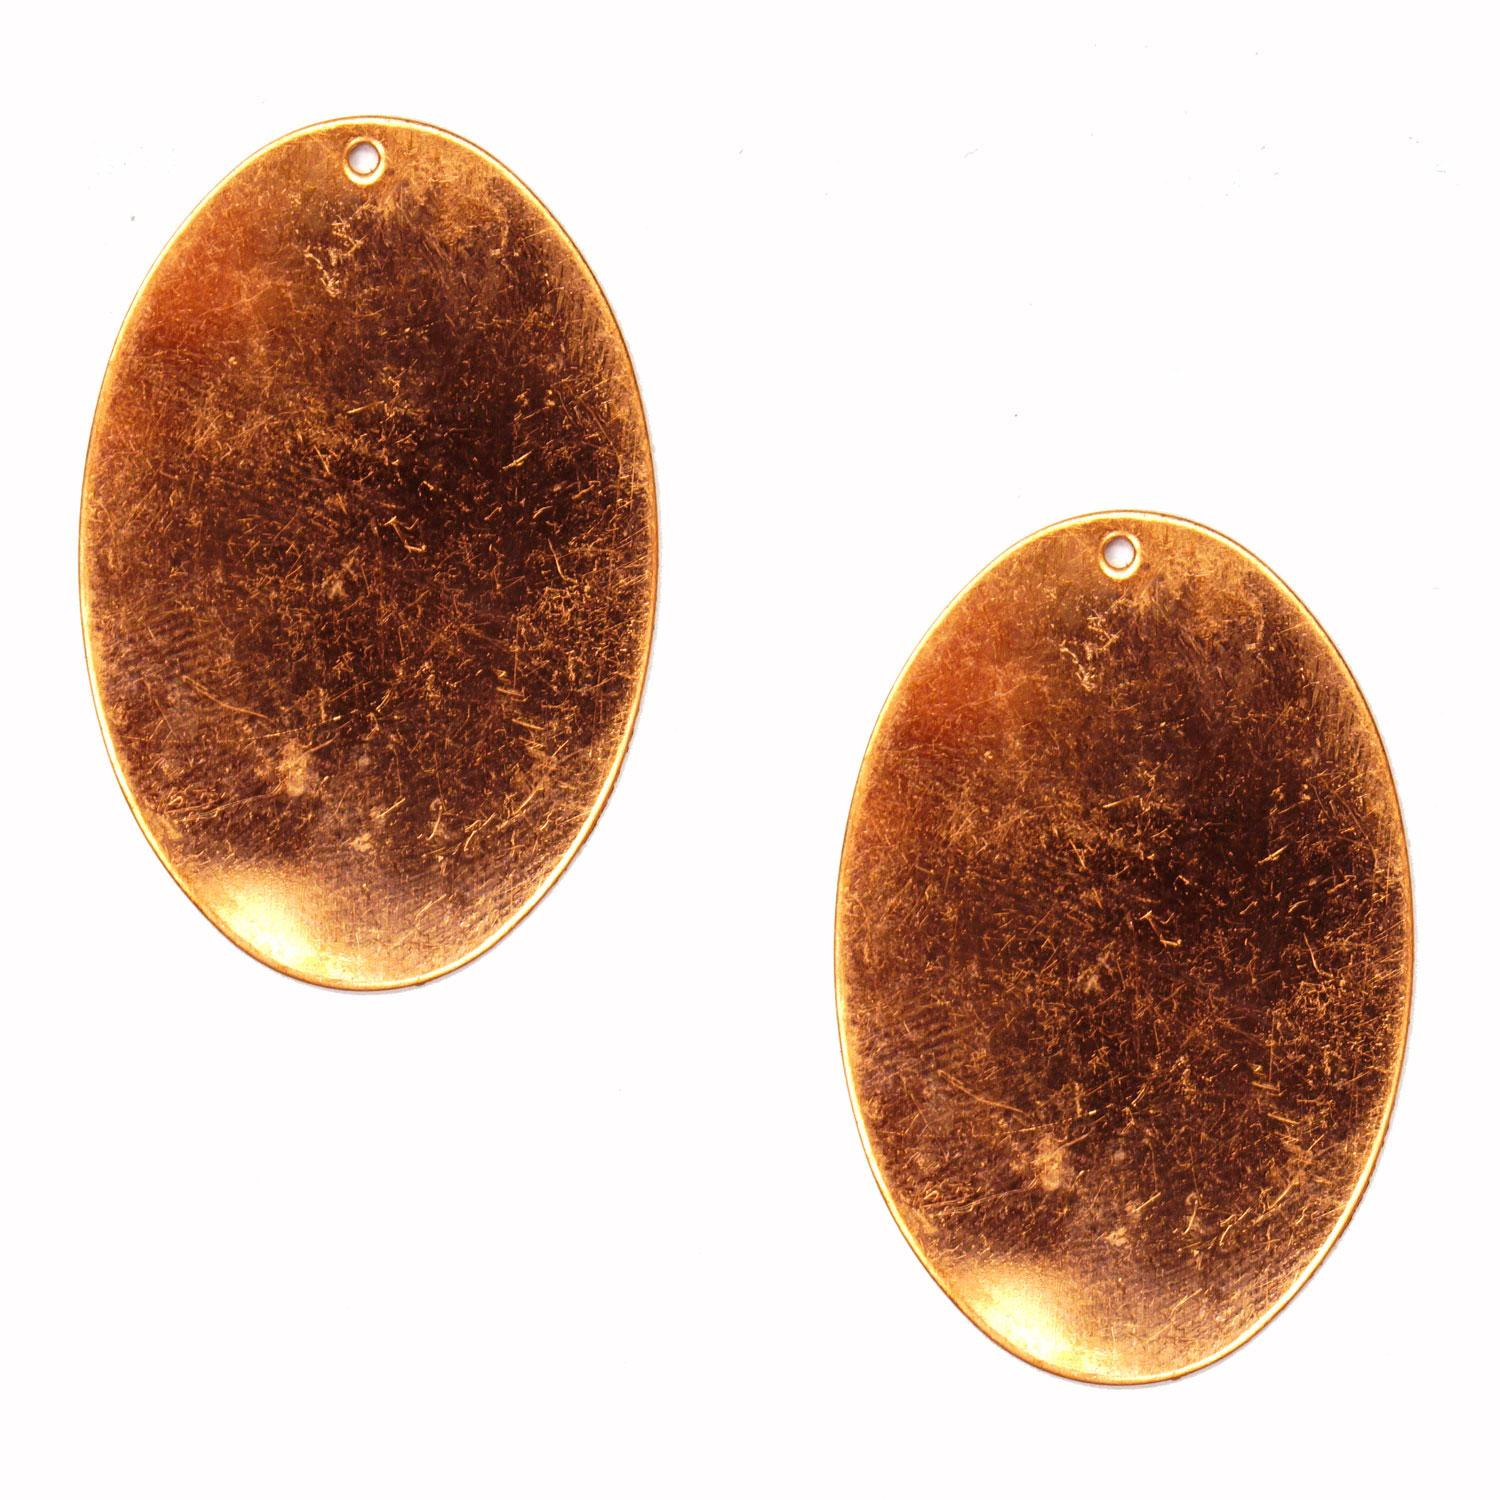 Oval Copper Shape with Hole - 2 Pack